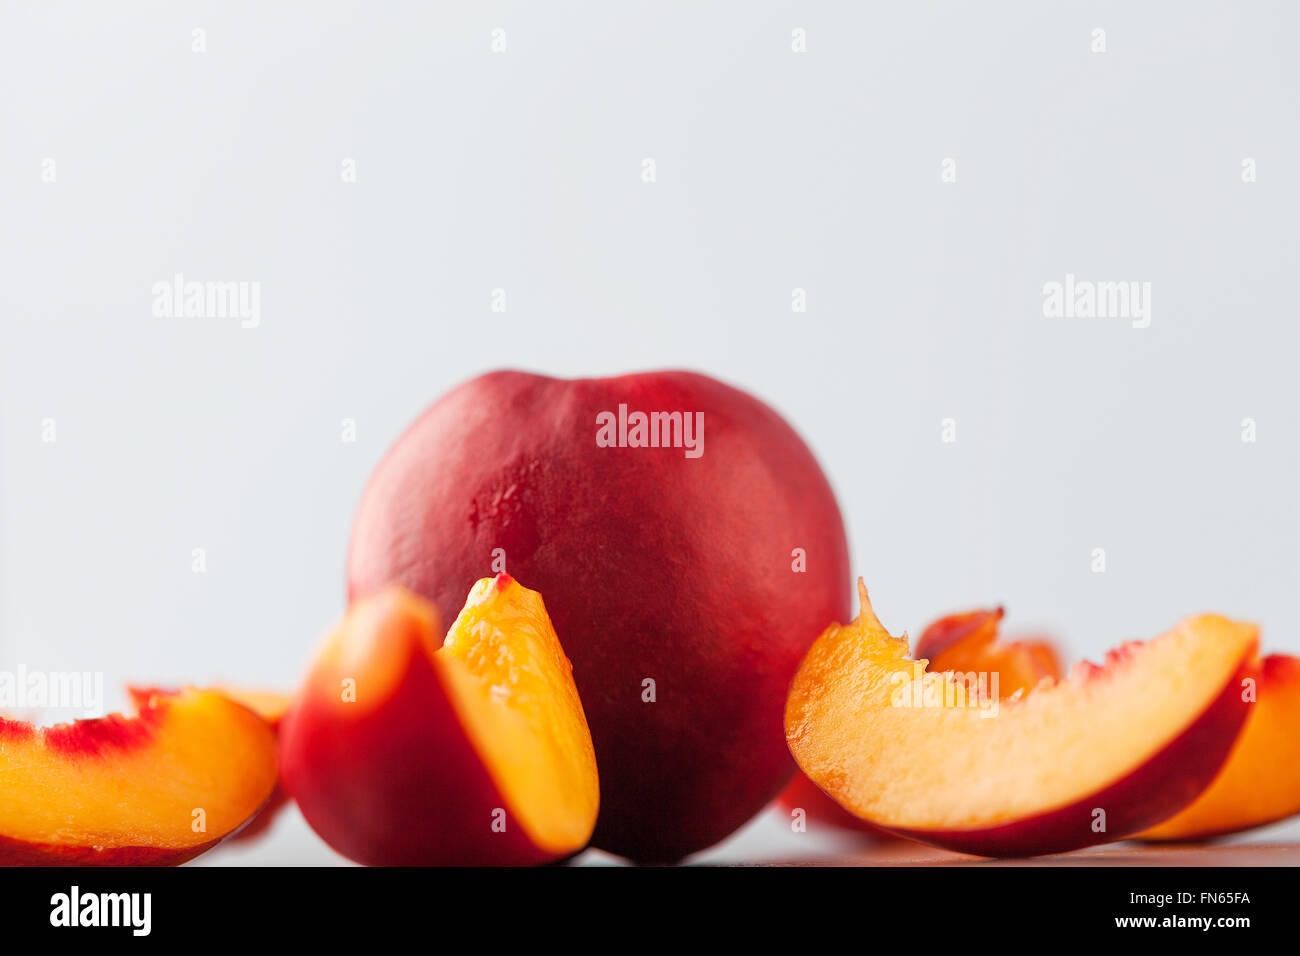 Extreme closeup of yellow nectarine peach slices with copy space. Shallow depth of field. - Stock Image